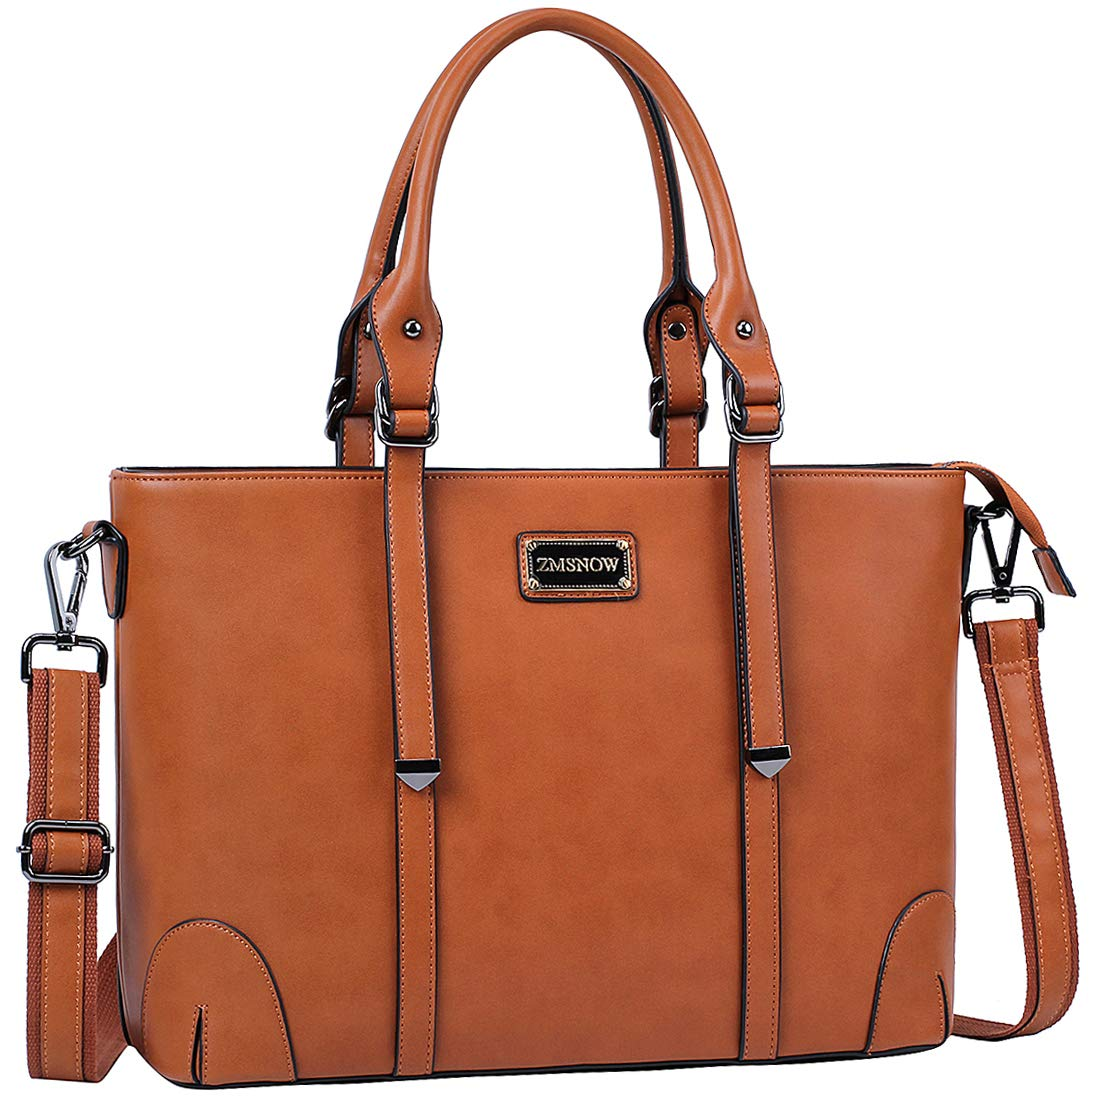 ca3bc7286c15 ZMSnow Laptop Bag,Work Tote Bag Fits Up to 15.6 Inch Laptop Tablet for  Women Business Travel (Brown)